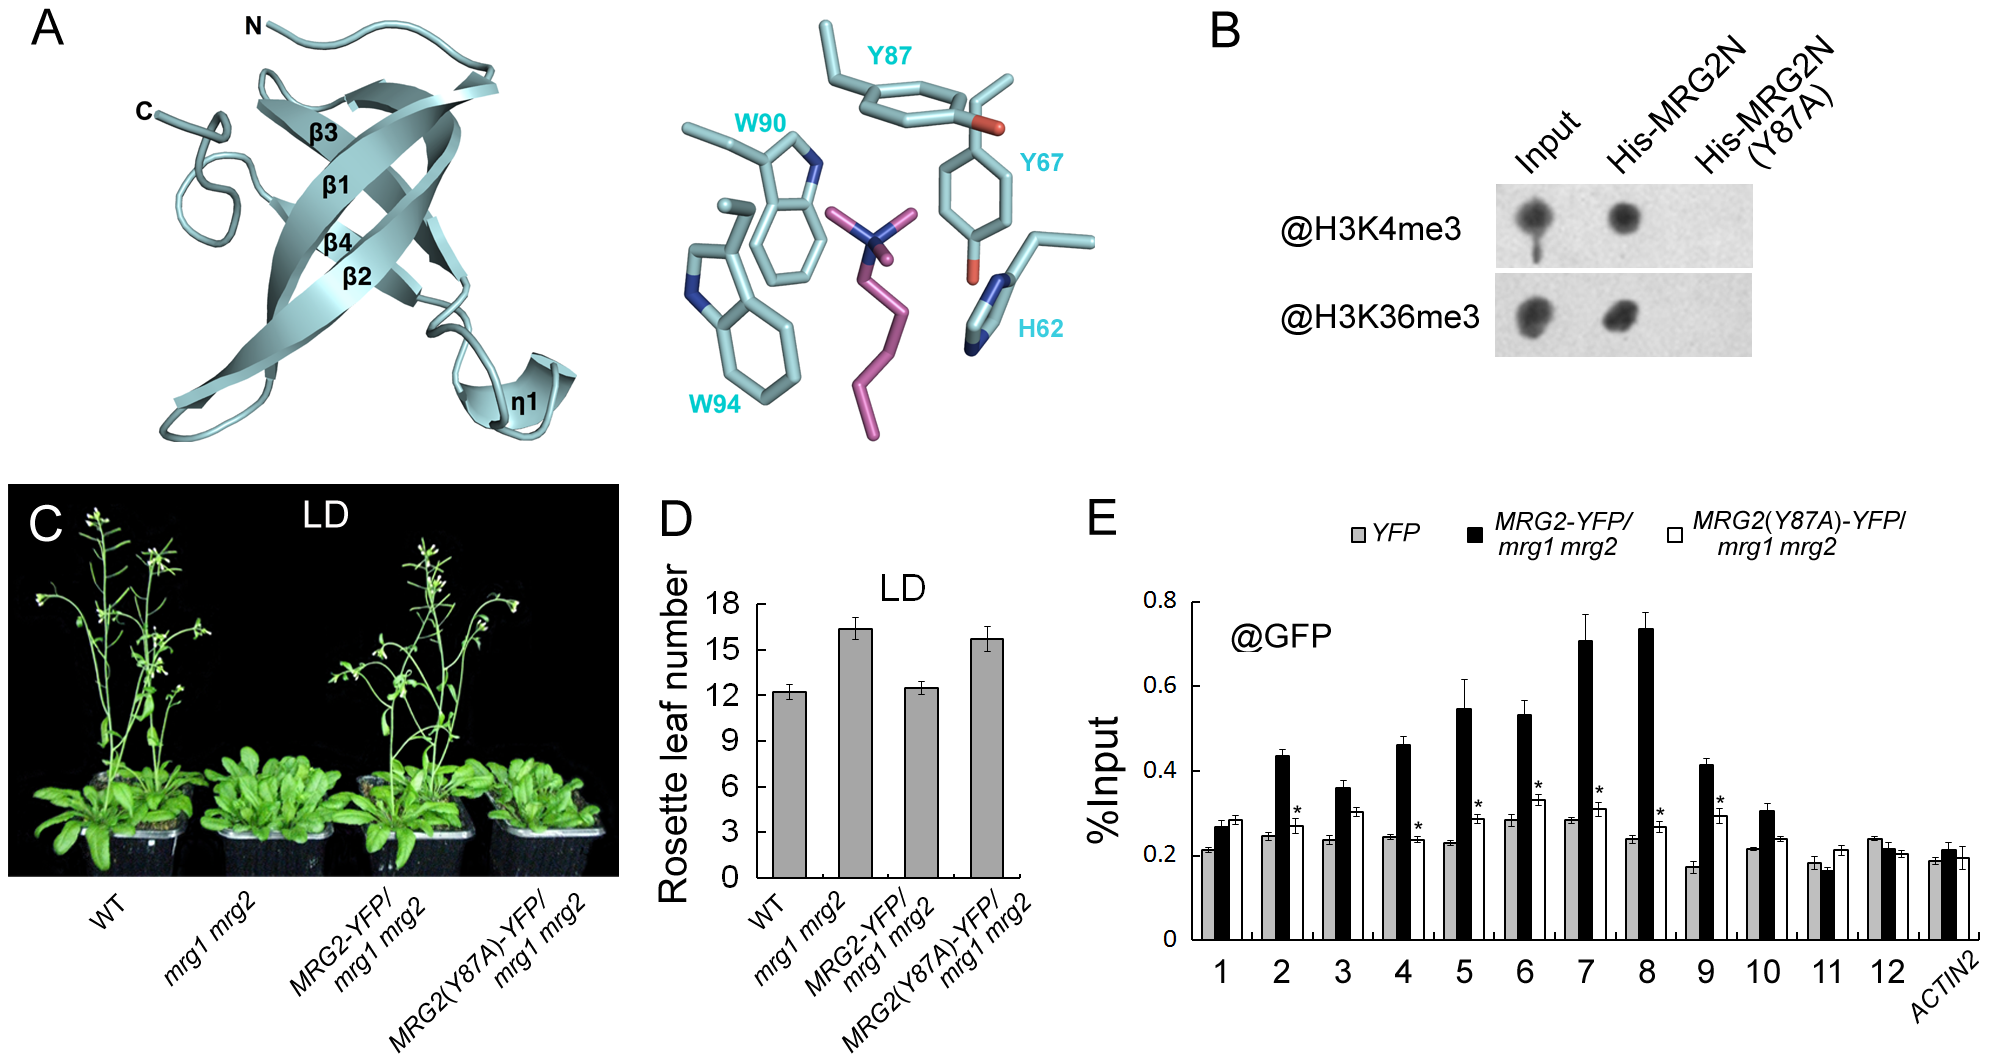 MRG1/2 binding to histone marks is required for their function in regulating flowering.